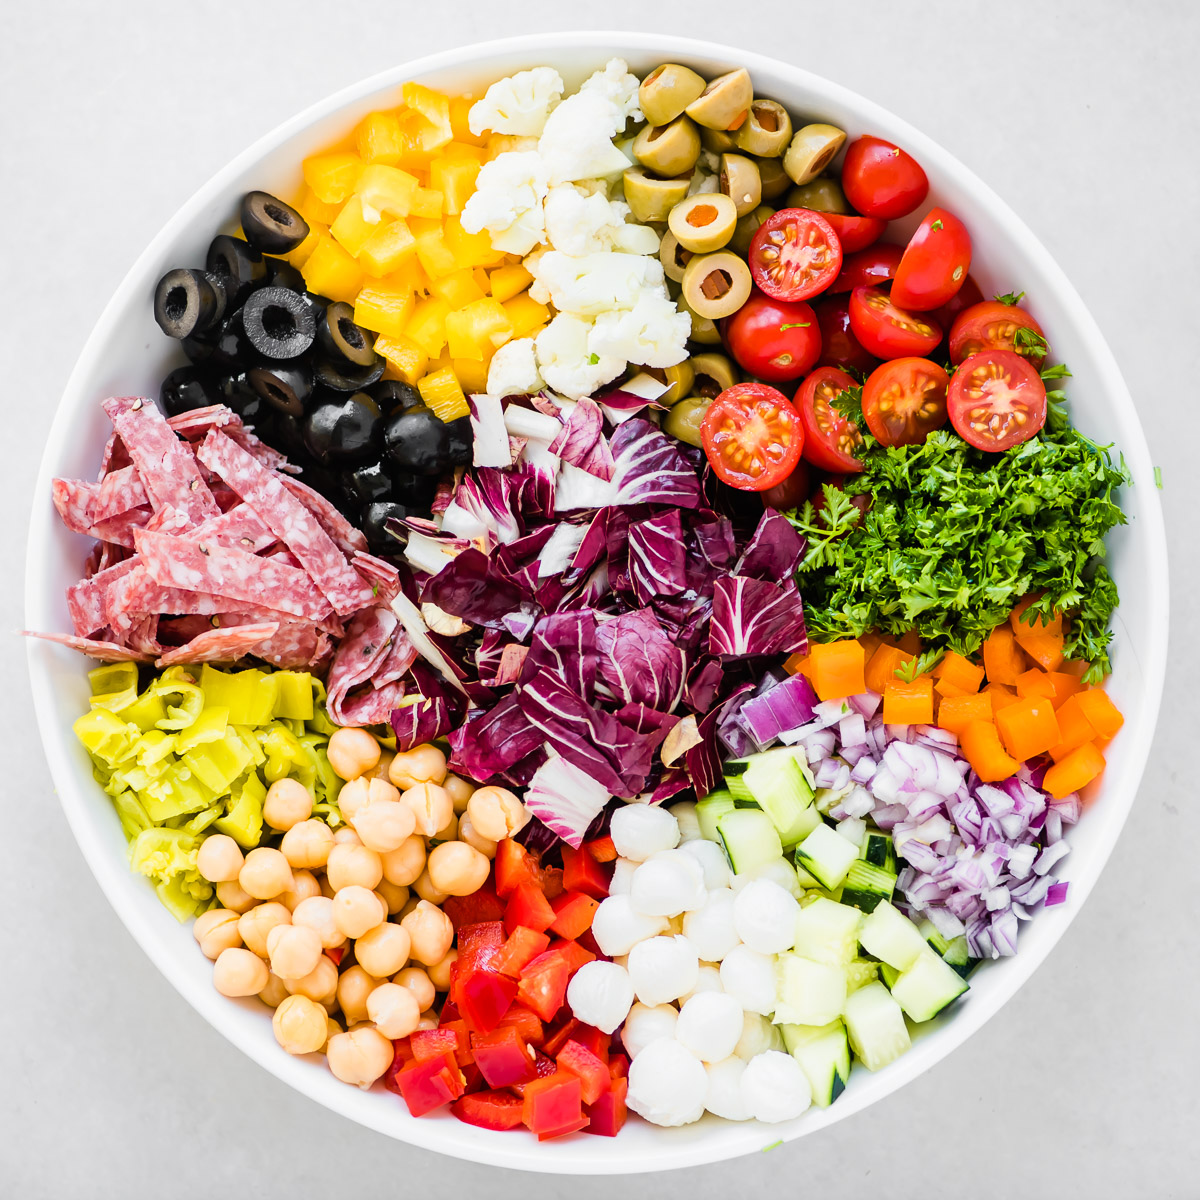 chopped Italian salad ingredients arranged in a salad bowl